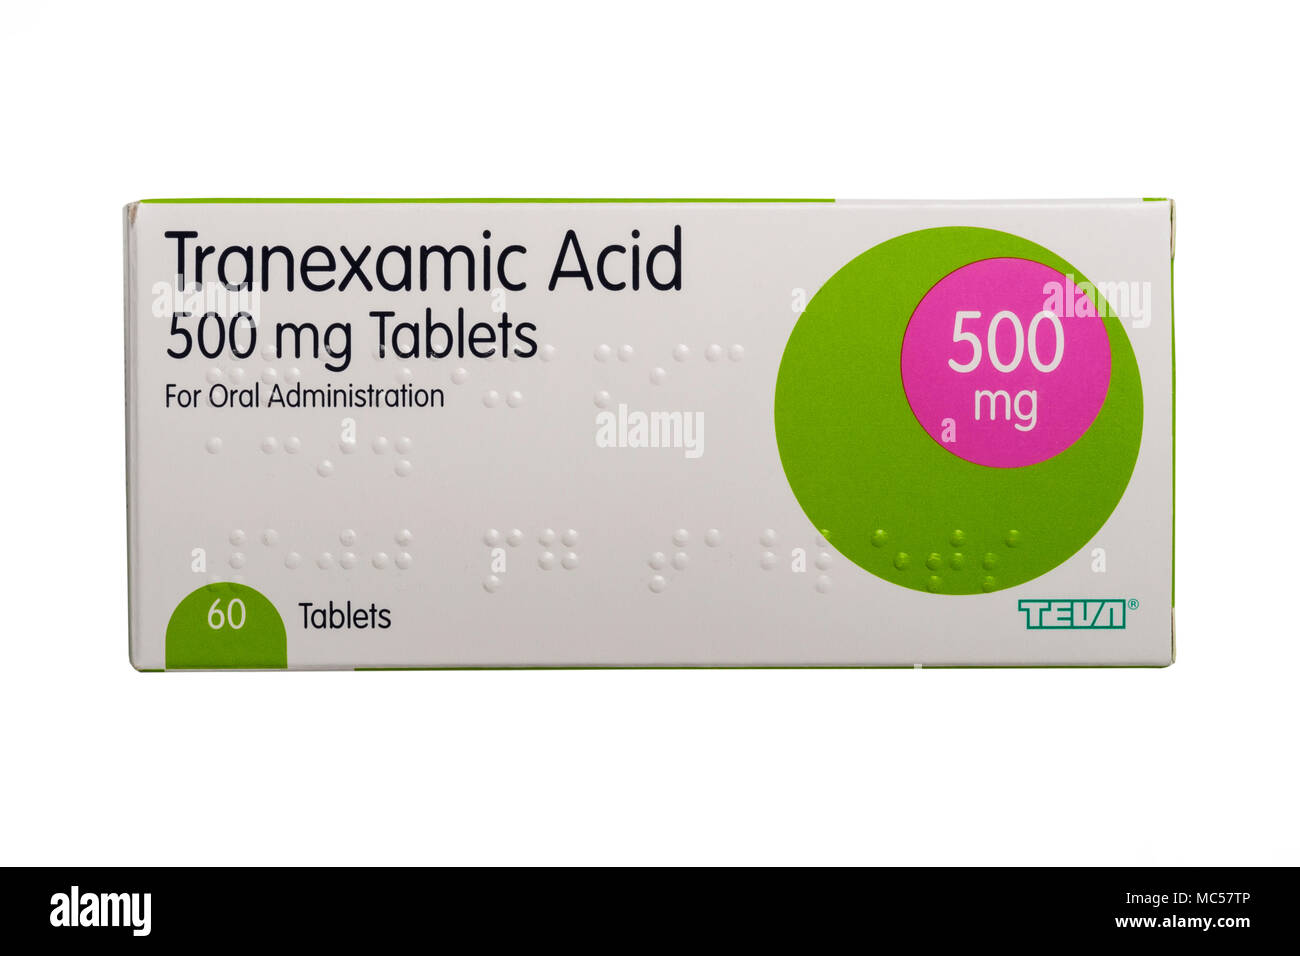 A box of Tranexamic Acid 500mg tablets on a white background - Stock Image